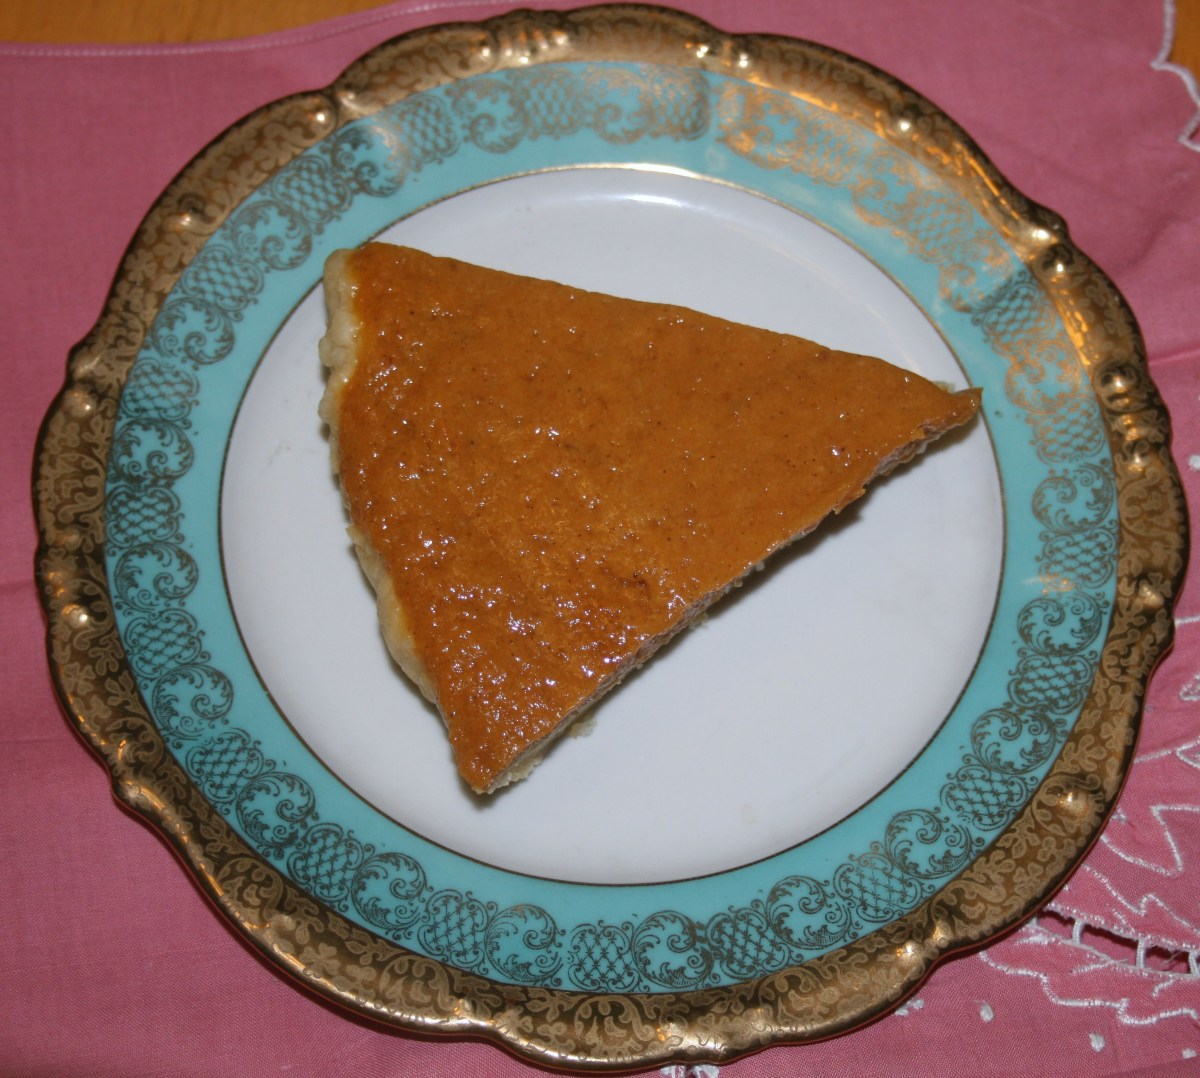 Here's Gin's Pumpkin Chiffon Pie in a pie crust made with vinegar.